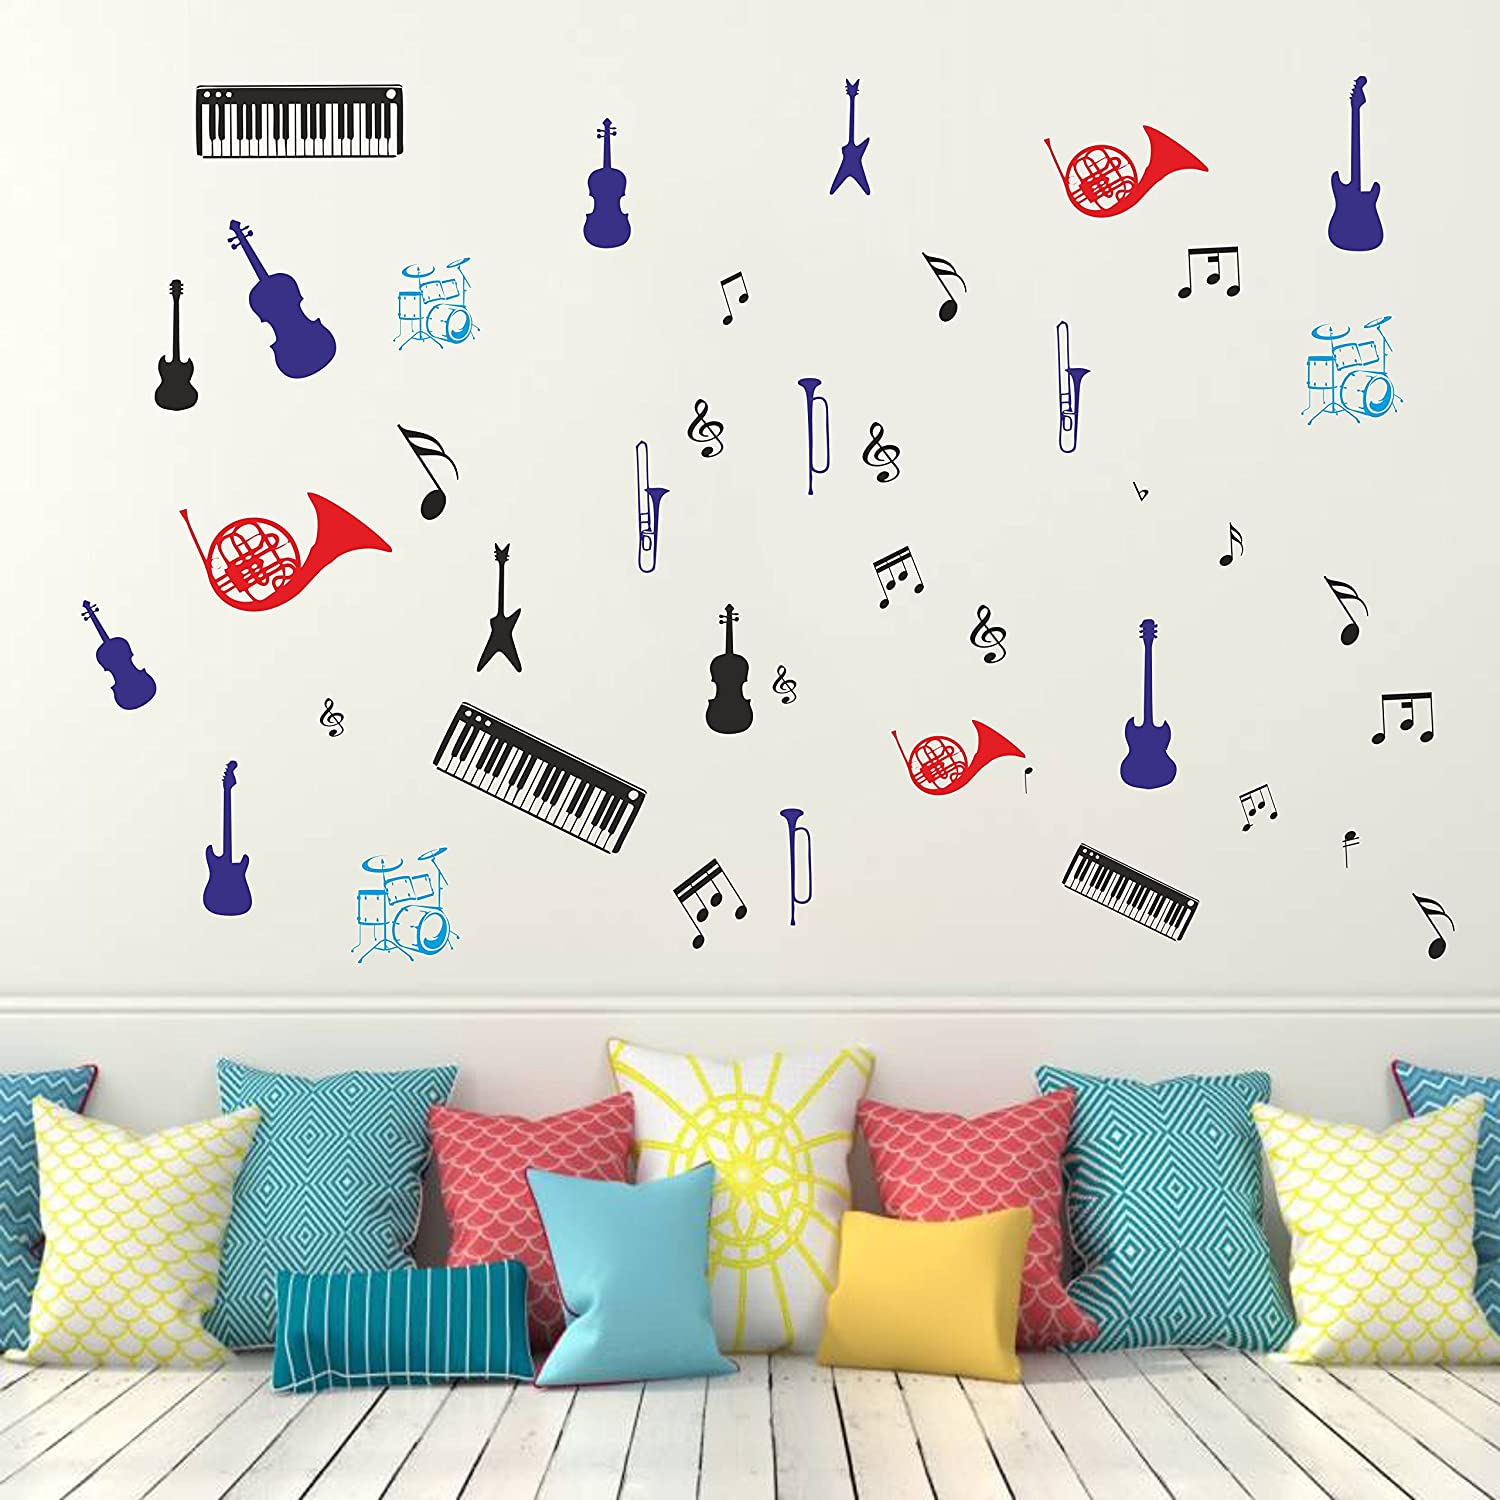 Buy Orka Music Theme Digital Printed Wall Decal Sticker 55 X 55 Cm Sb503 Online At Low Prices In India Amazon In